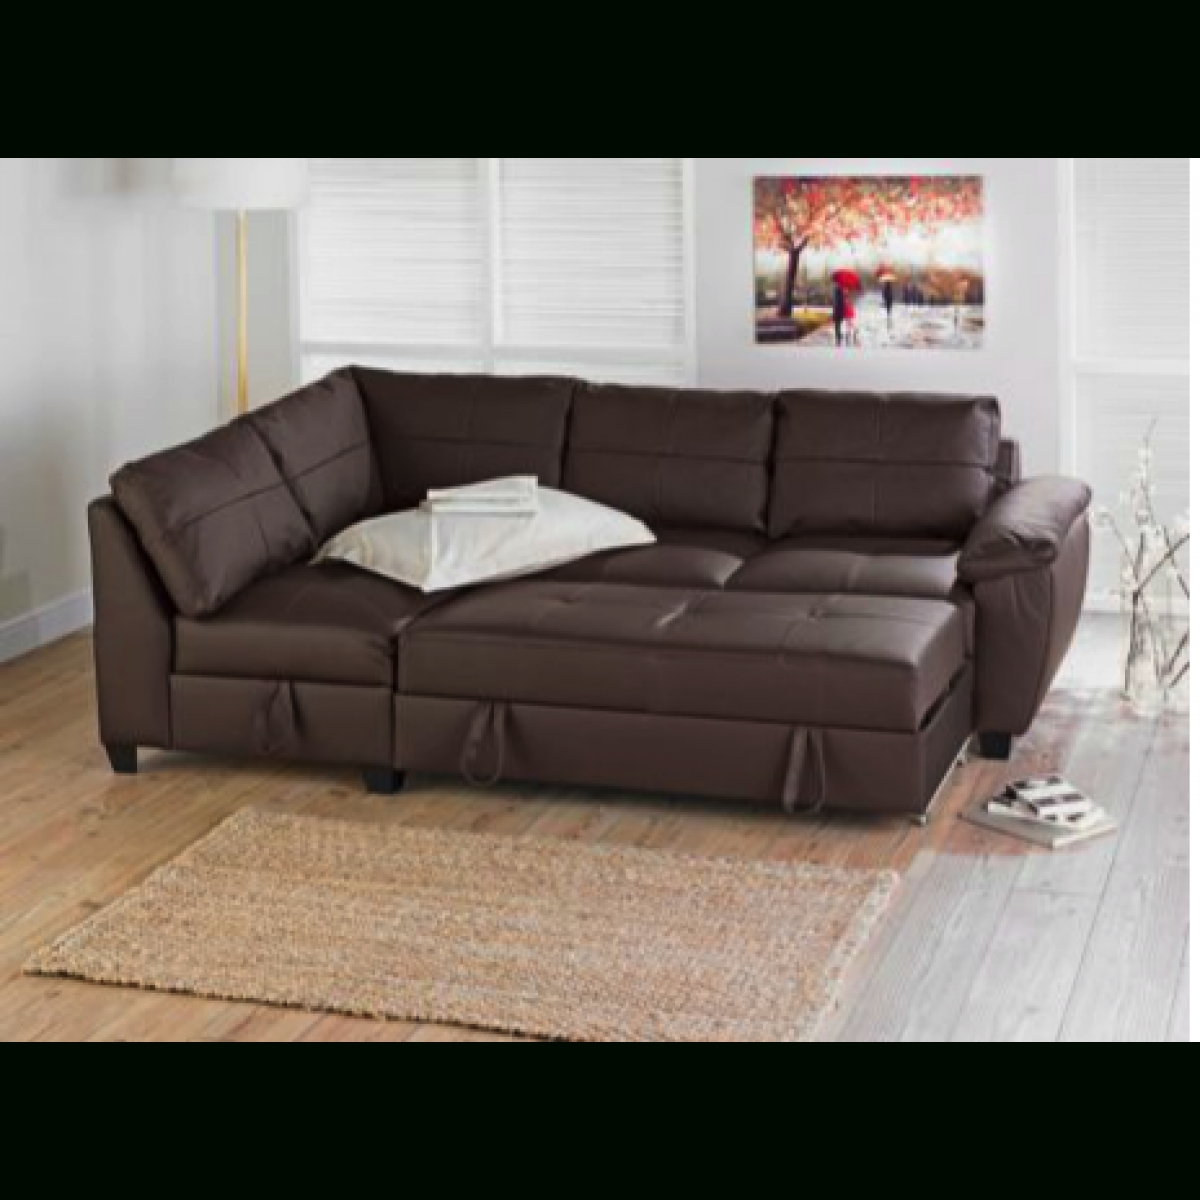 Fernando Leather Left Hand Sofa Bed Corner Group - Chocolate throughout Leather Corner Sofa Bed (Image 14 of 30)